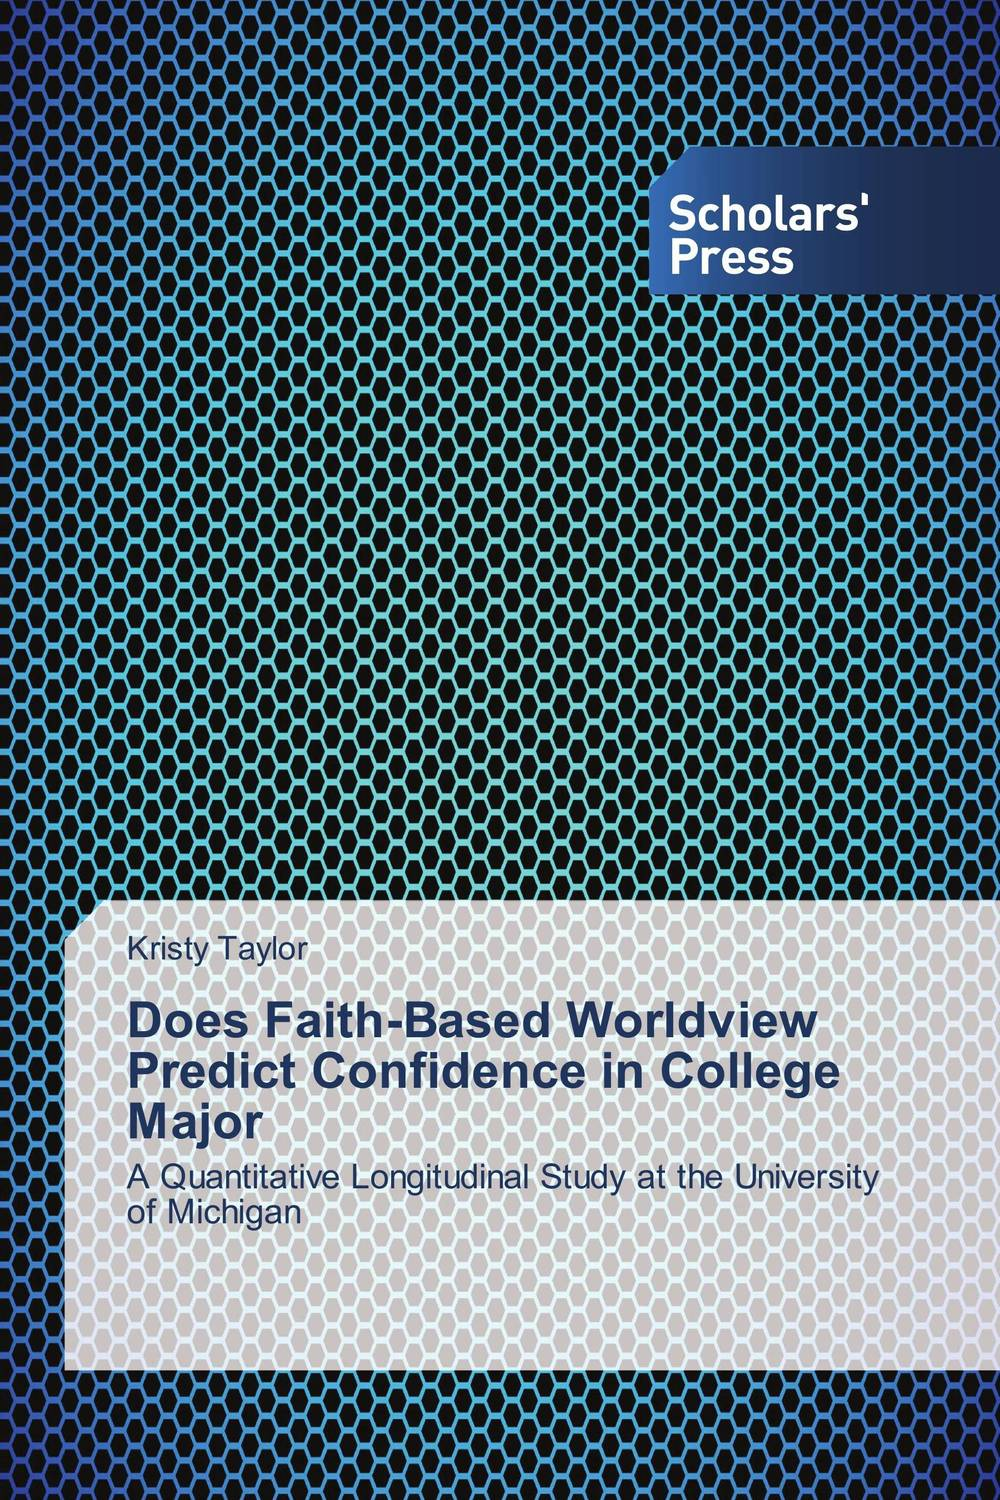 Does Faith-Based Worldview Predict Confidence in College Major peter block stewardship choosing service over self interest